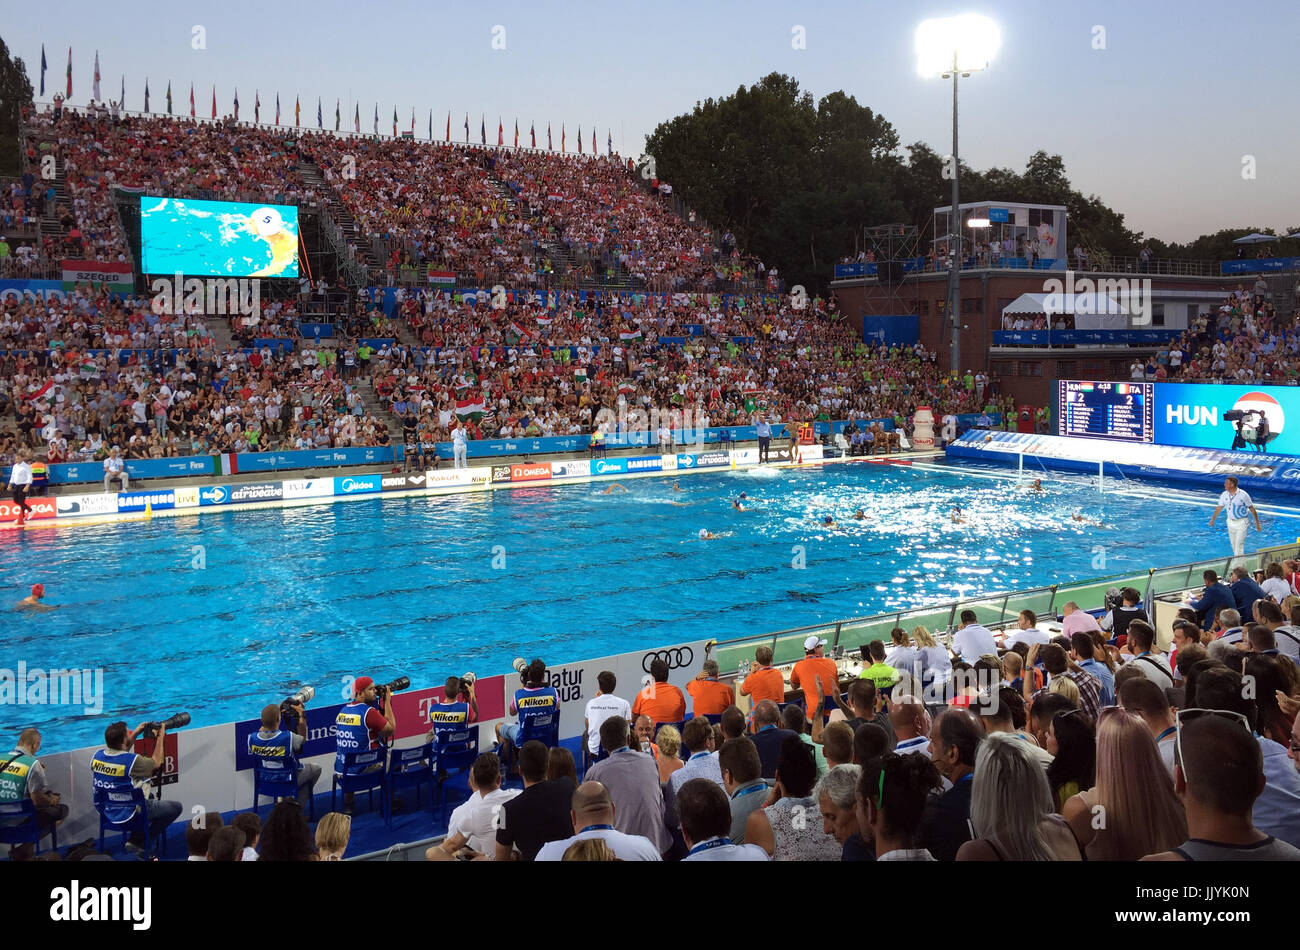 Budapest, Hungary. 19th July, 2017. A general view of the arena at the Alfréd Hajós Swimming premises, - Stock Image